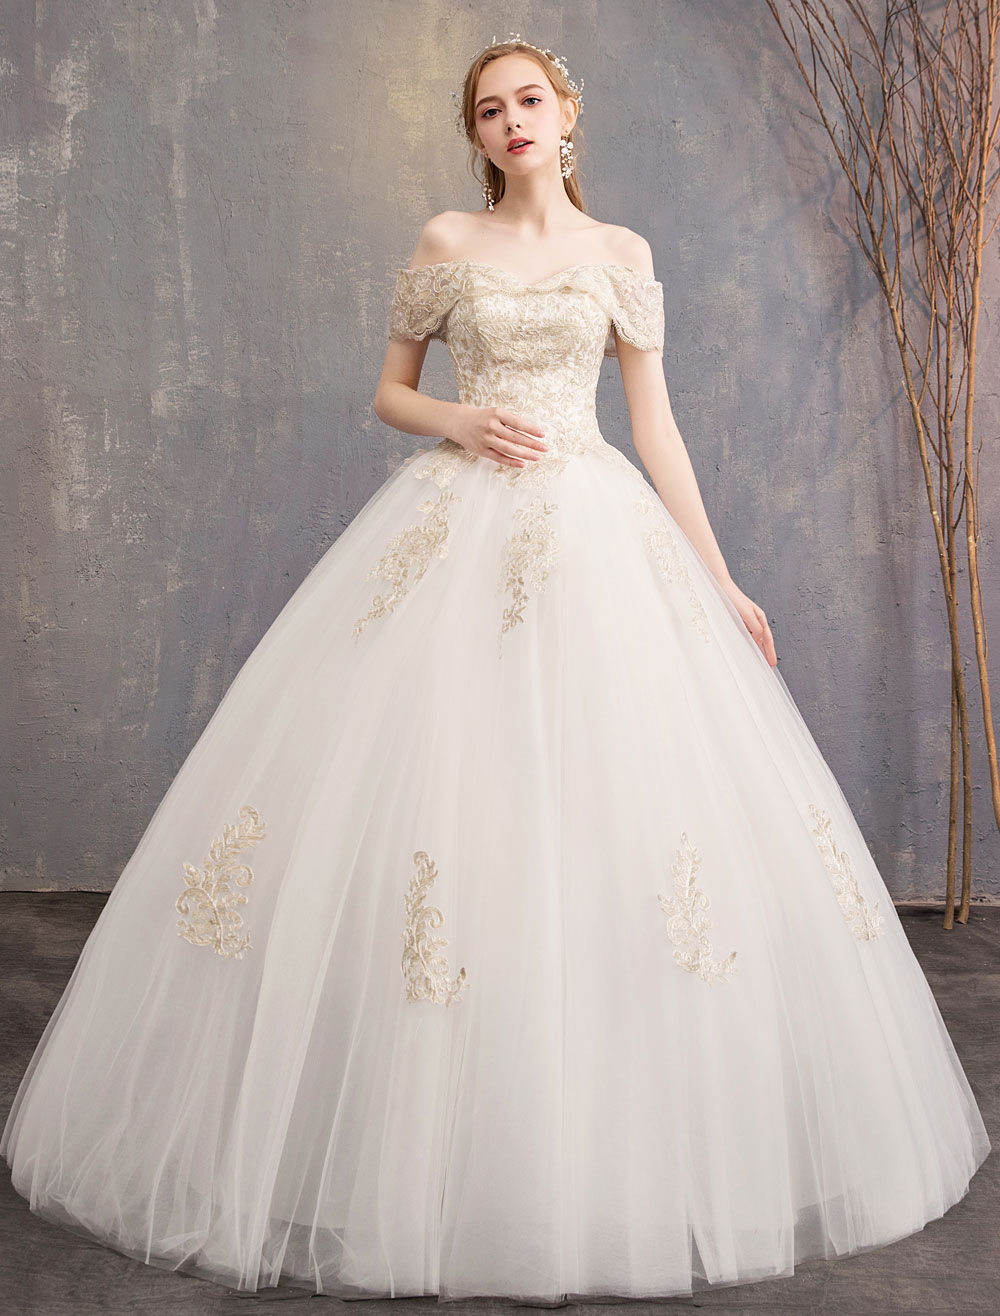 a766dcbd6 Princess Wedding Dress Ivory Lace Applique Off The Shoulder Short Sleeve  Bridal Gown-No.